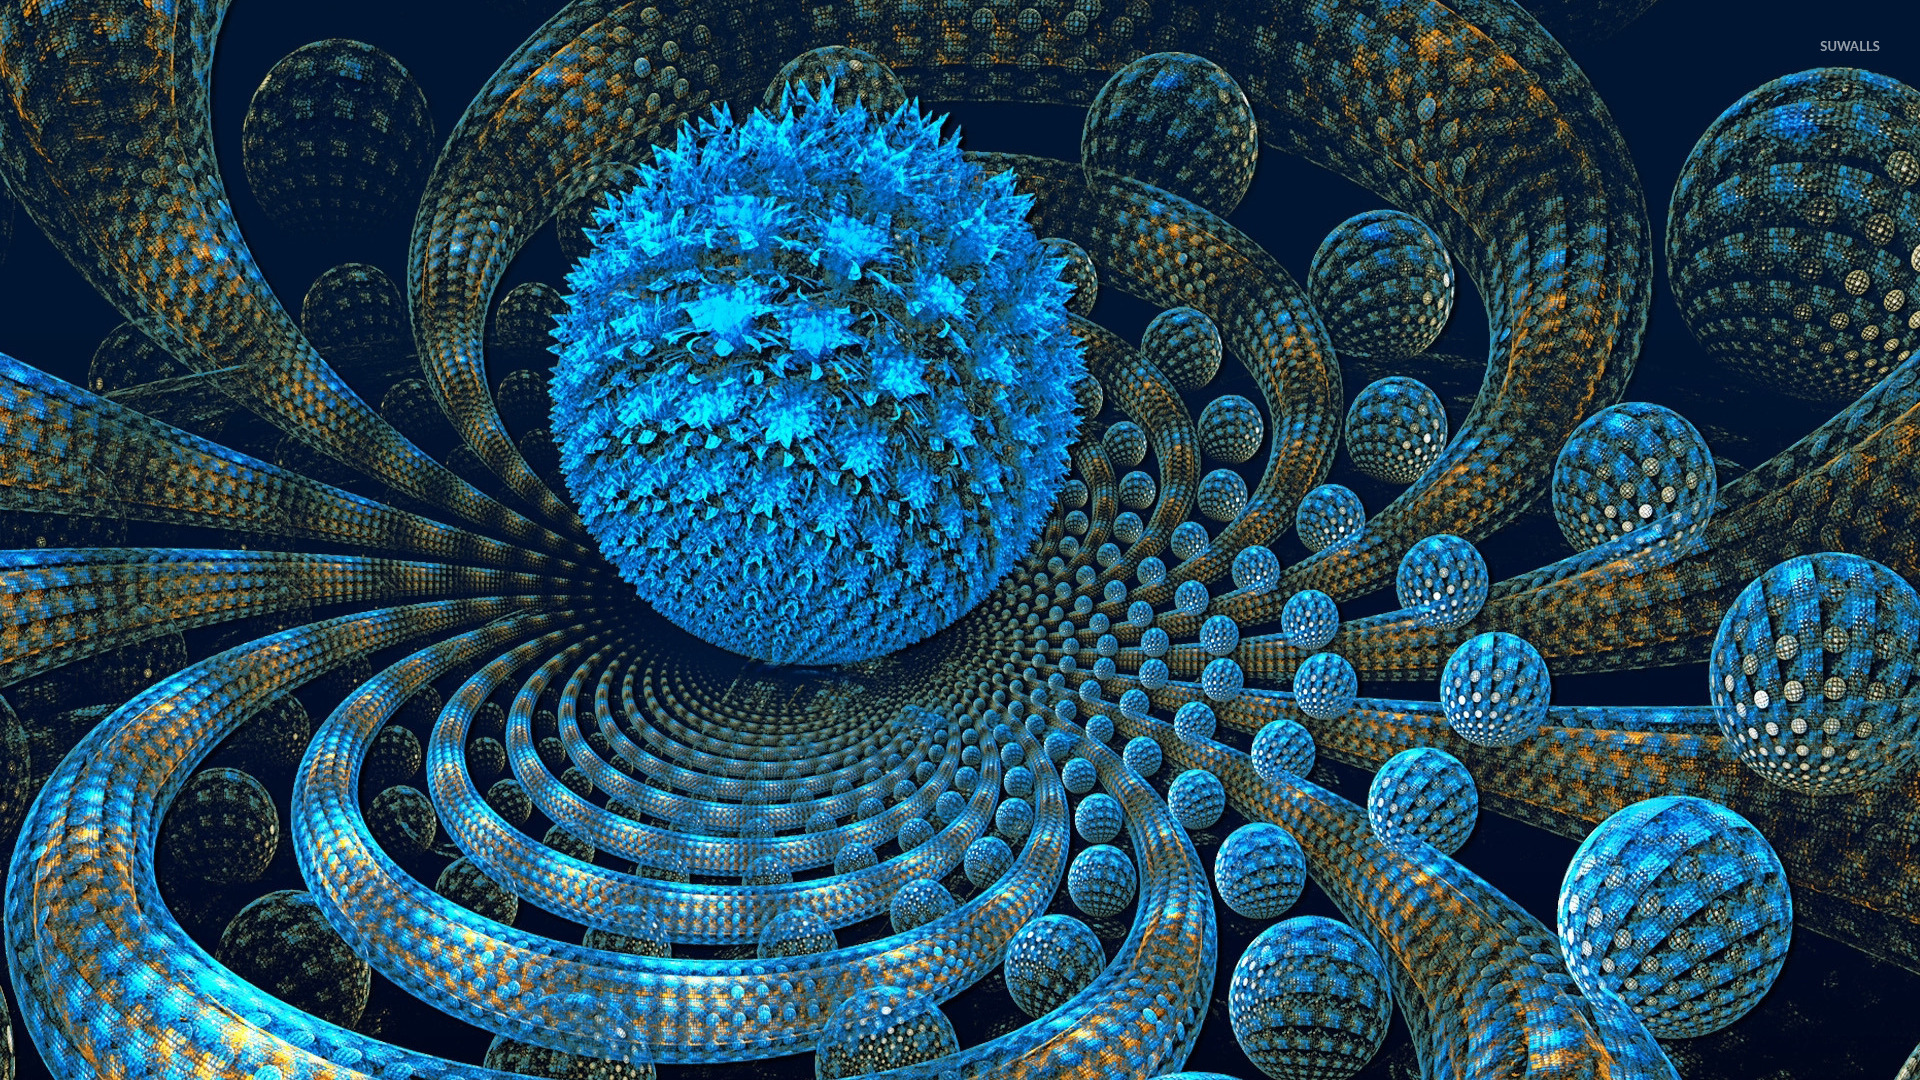 Spiral Wallpaper 3d Blue Fractal Orbs Wallpaper 3d Wallpapers 45383